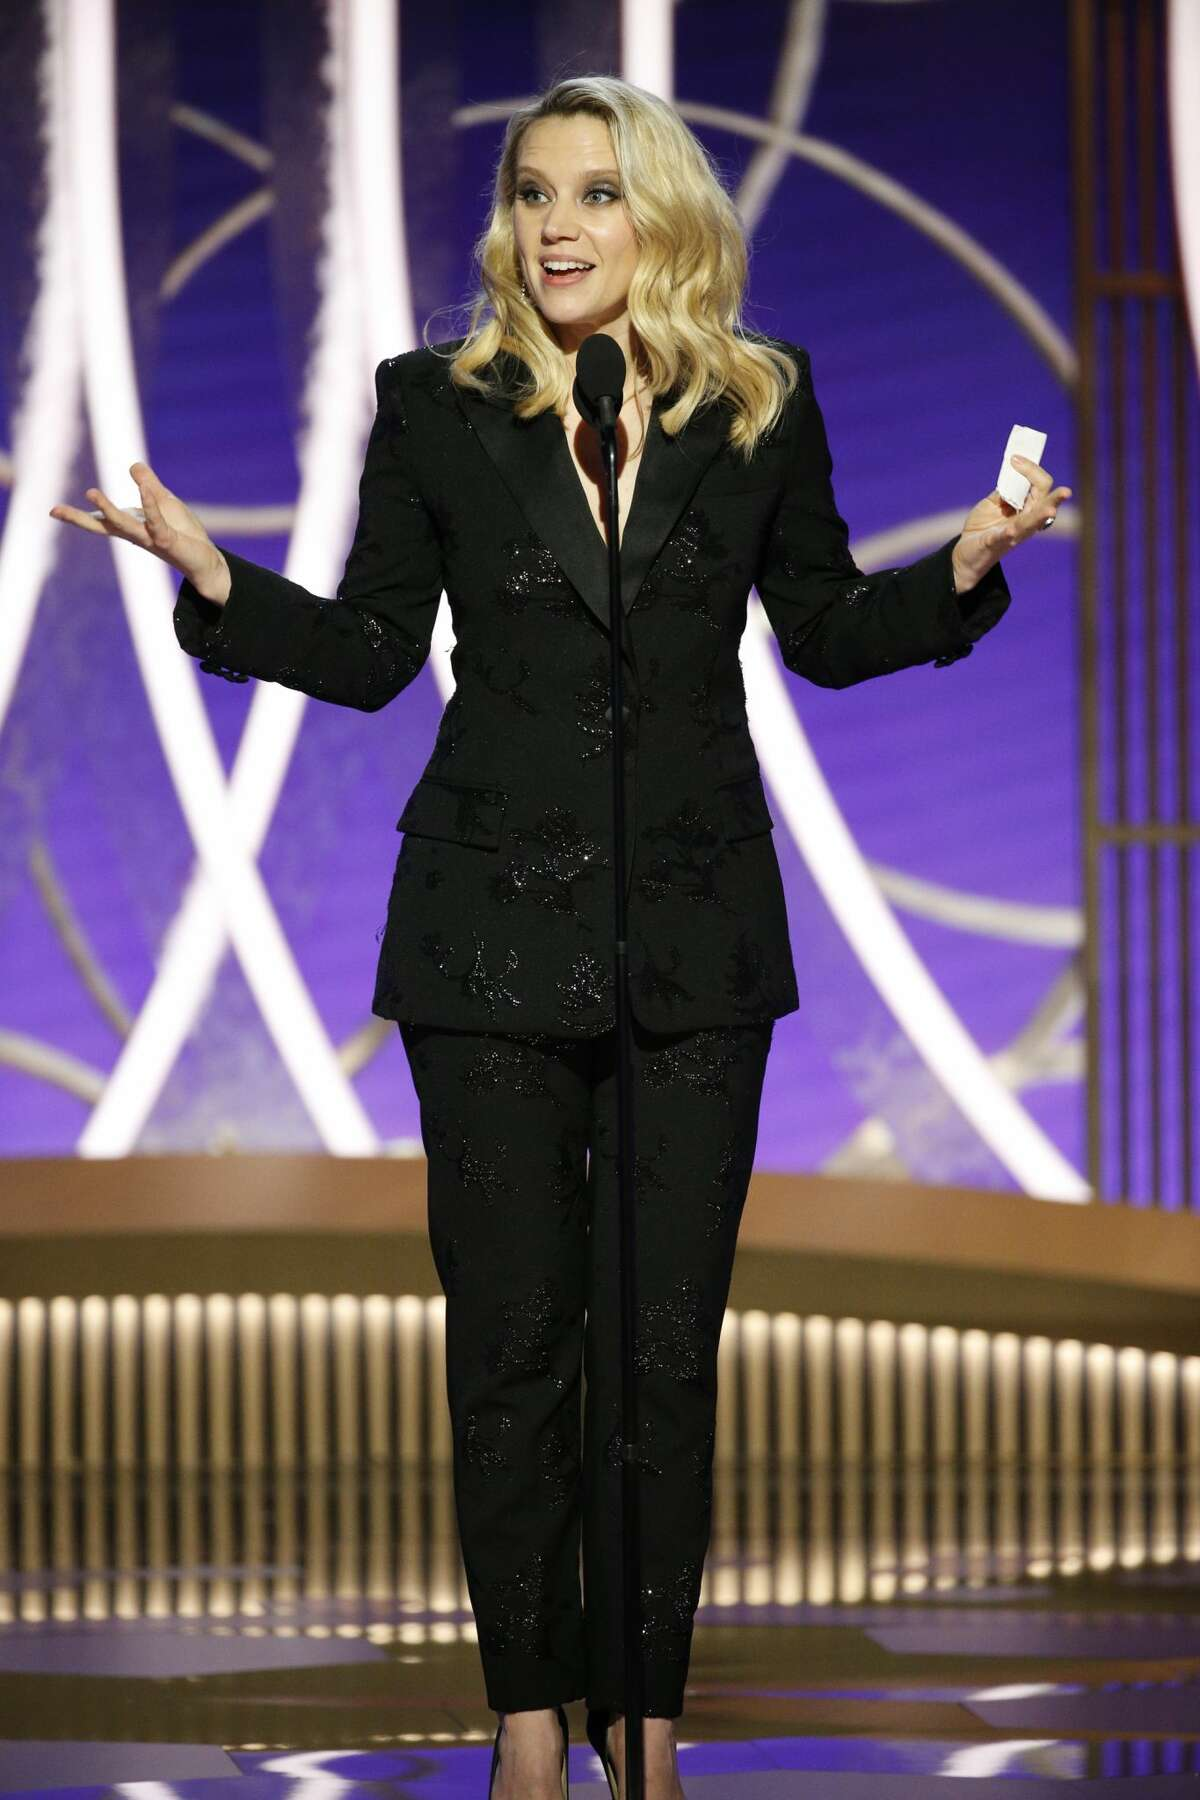 In this handout photo provided by NBCUniversal Media, LLC, Kate McKinnon speaks onstage during the 76th Annual Golden Globe Awards at The Beverly Hilton Hotel on Jan. 5, 2020 in Beverly Hills, Calif.